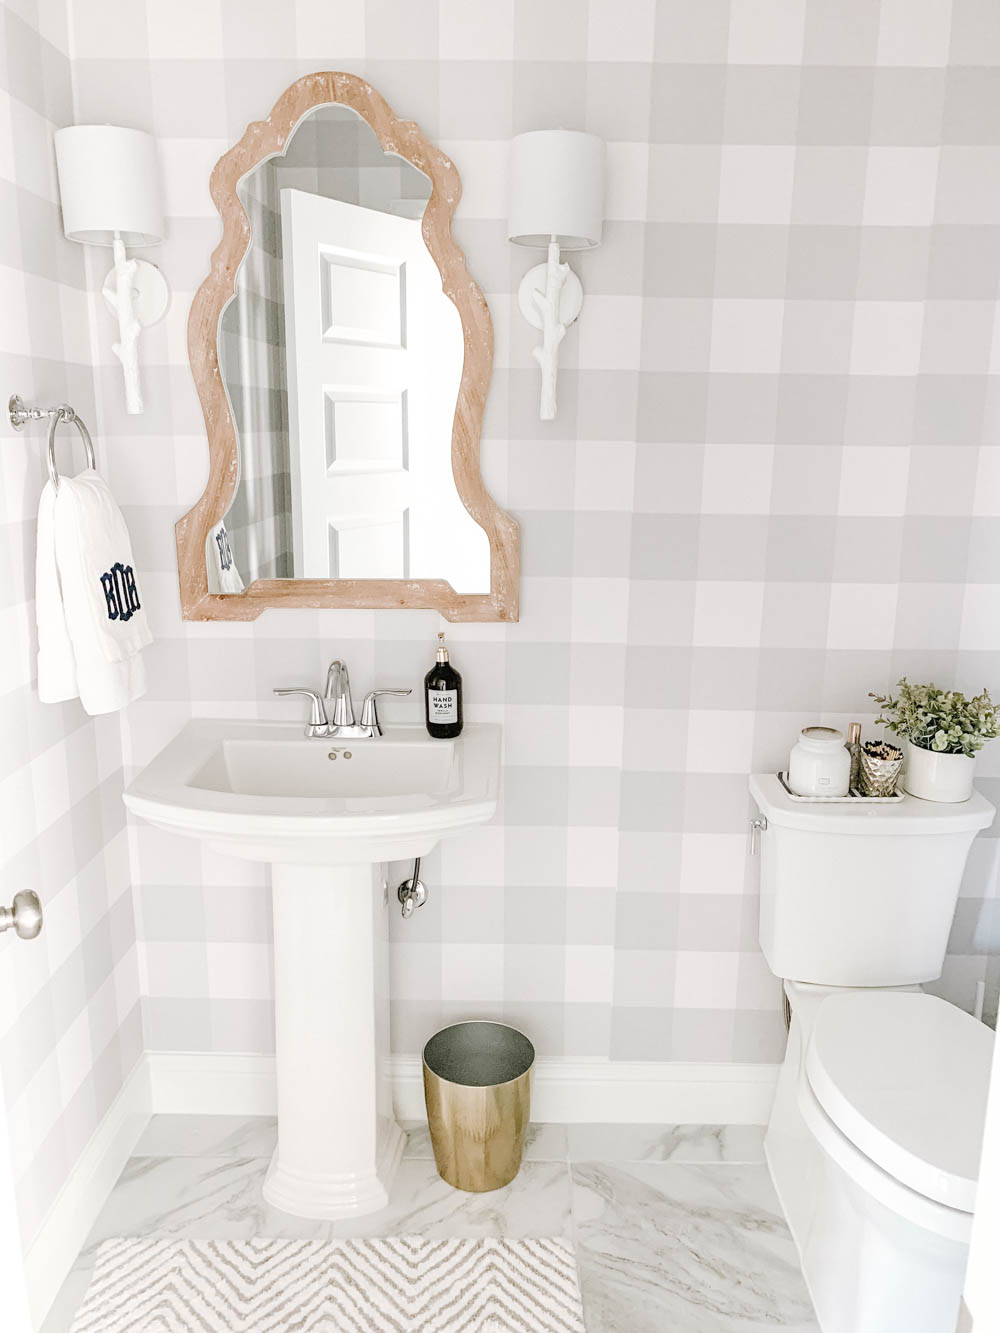 This is such an easy way to update a room! #ABlissfulNest #bathroom #bathroomdesign